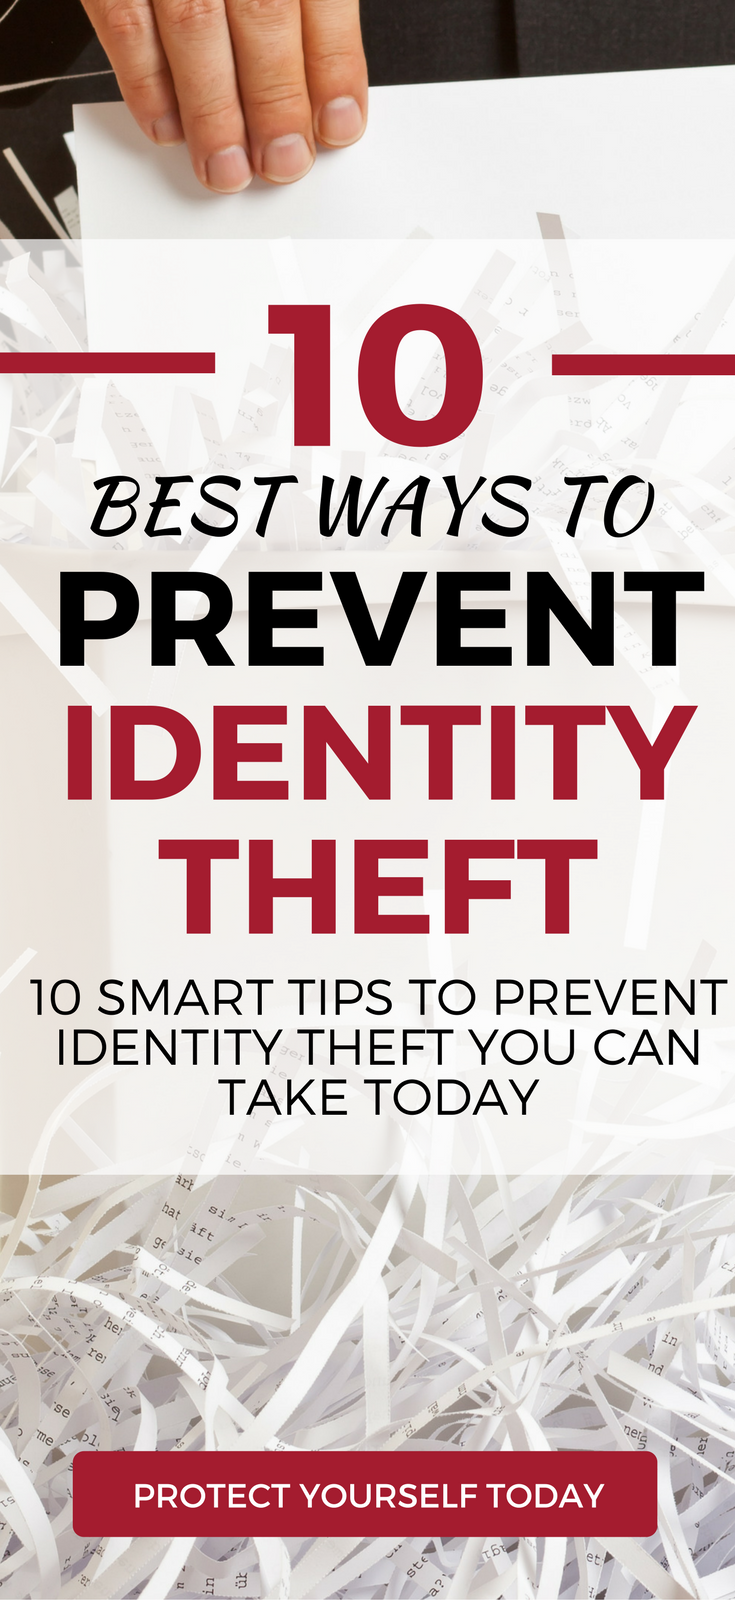 Smart tips on how to prevent identity theft. Learn ways to protect hackers from obtaining credit in your name and secure your identity online. Must know tips in the wake of the recent Equifax hack.